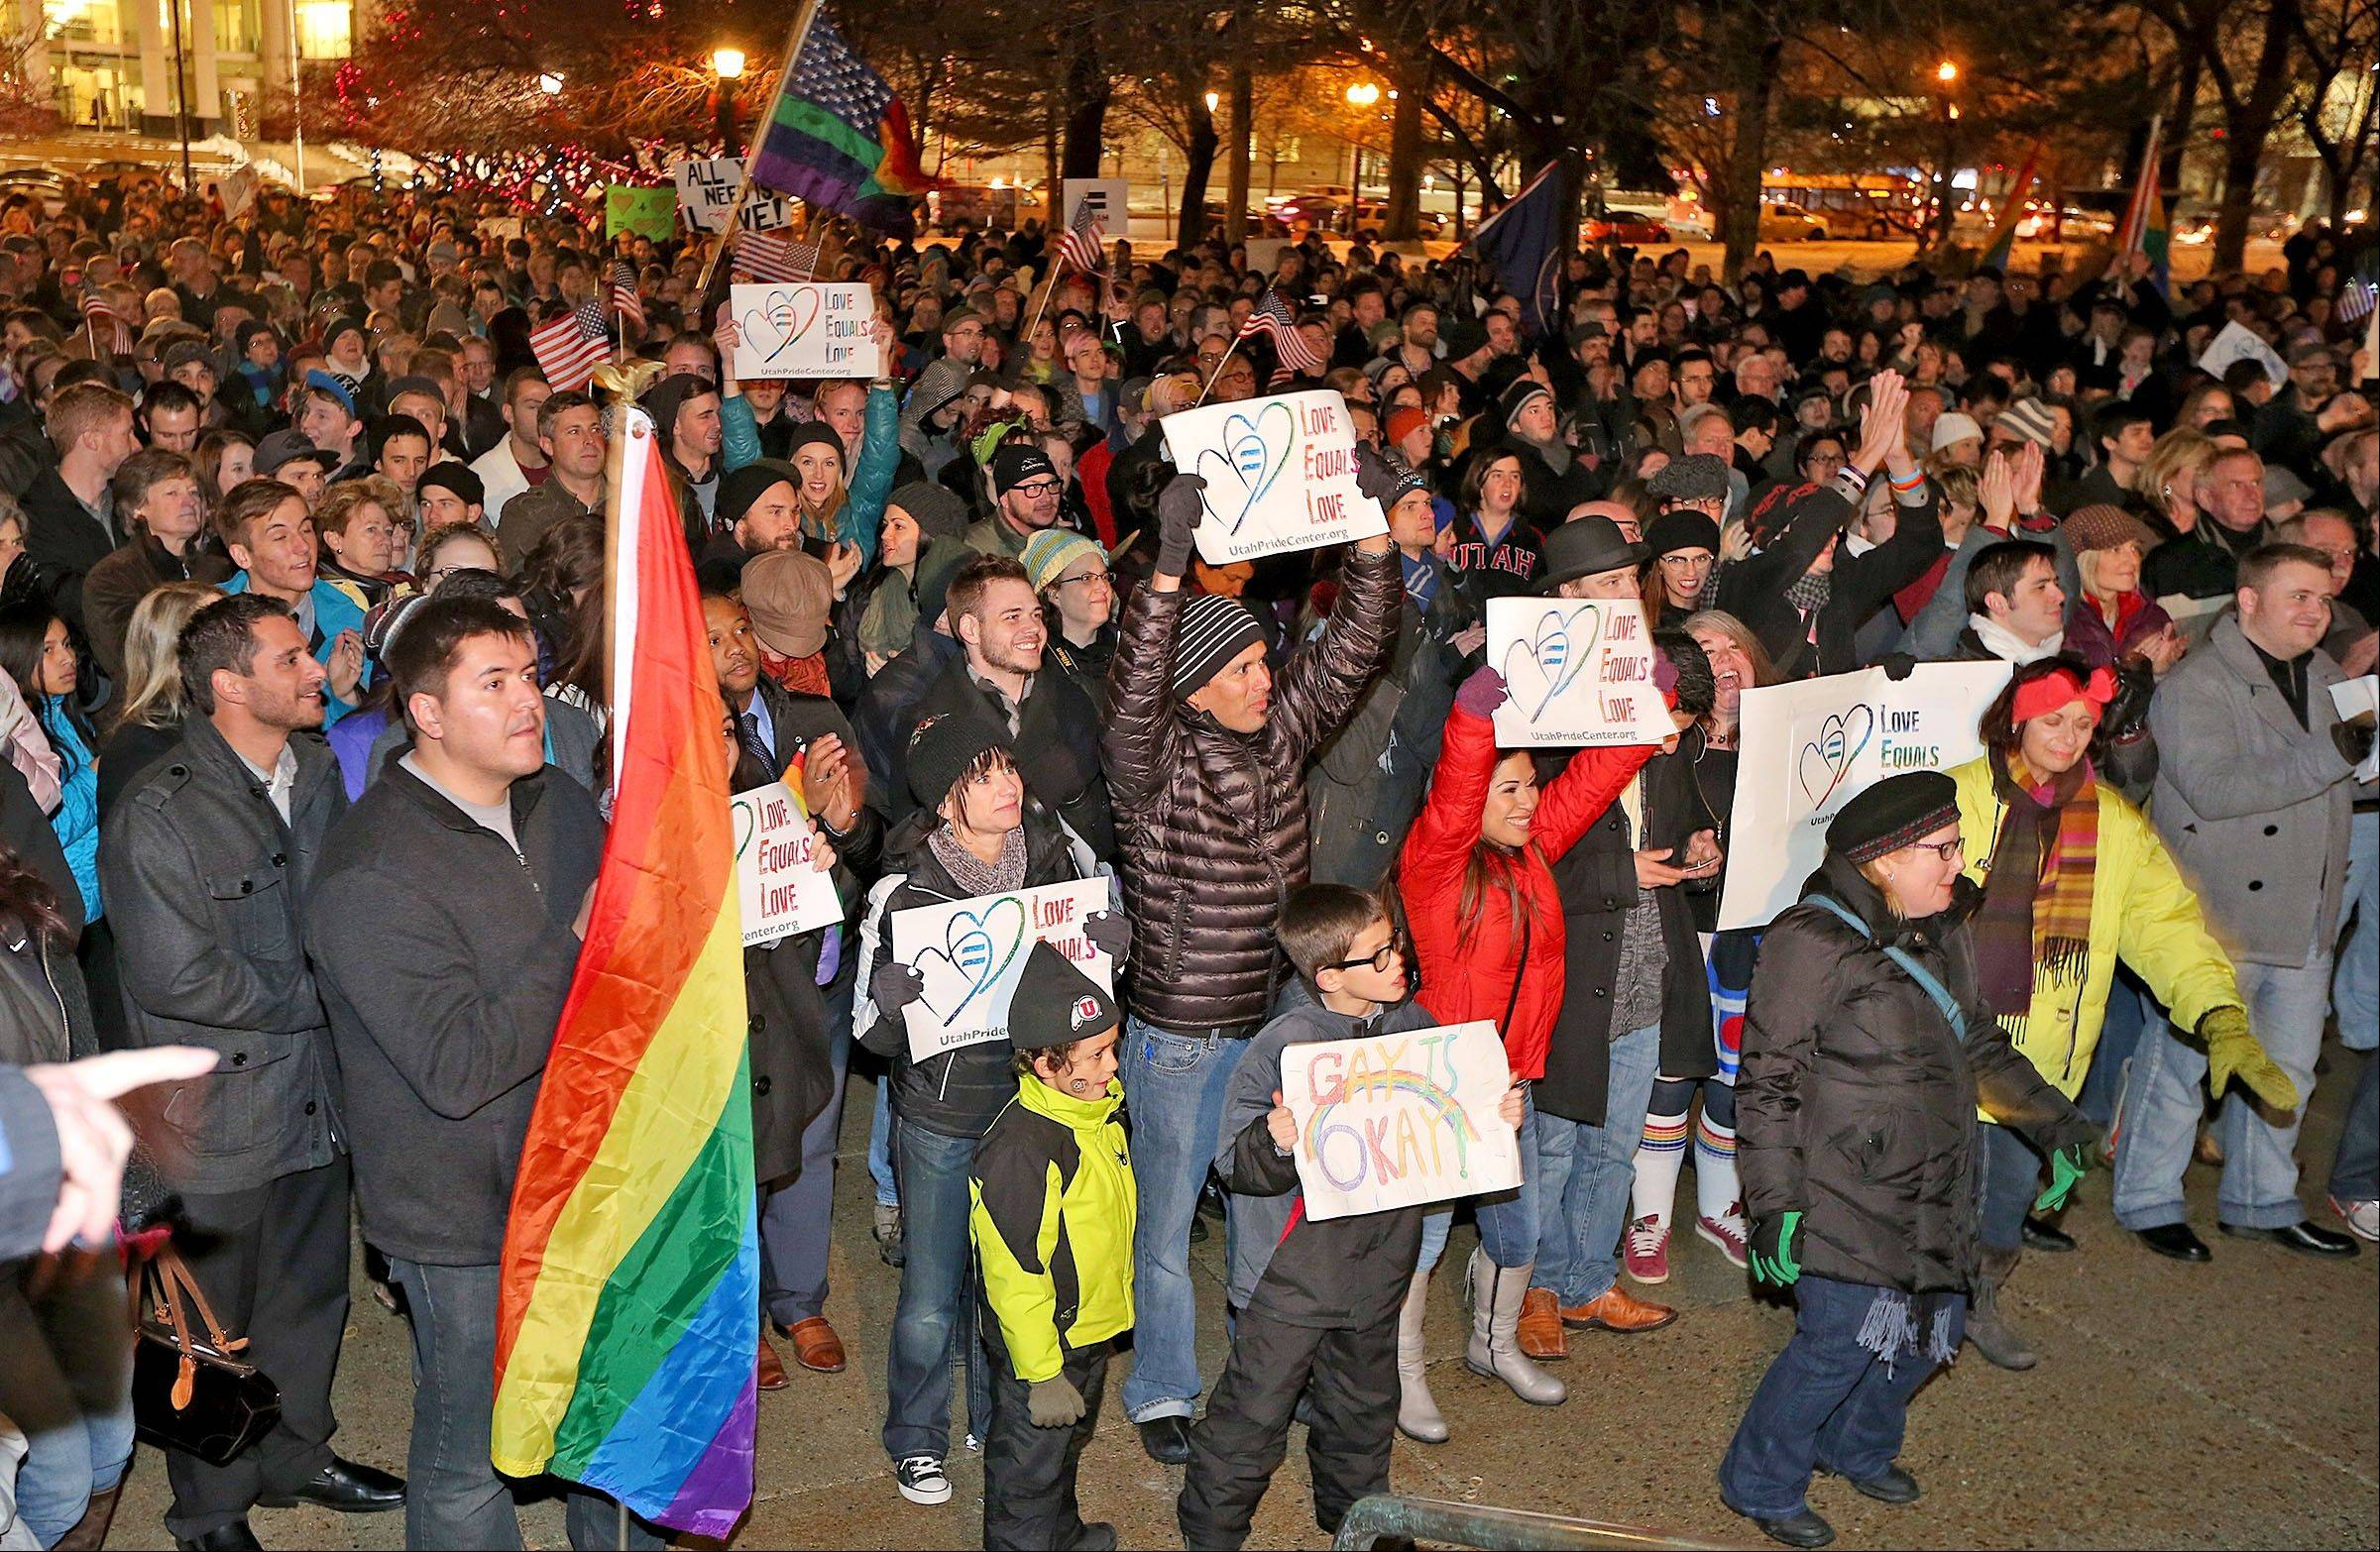 About 1,500 people gather Monday to celebrate marriage equality after a federal judge declined to stay his ruling that legalized same-sex marriage in Utah, at Washington Square just outside of the Salt Lake City and County Building.